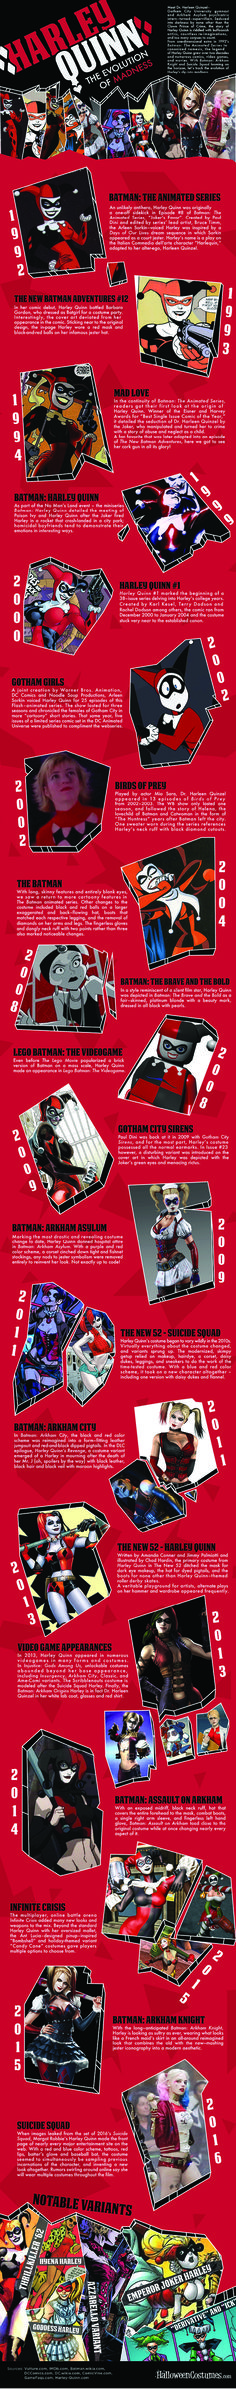 #HarleyQuinn Evolution of Madness #infographic #Entertainment